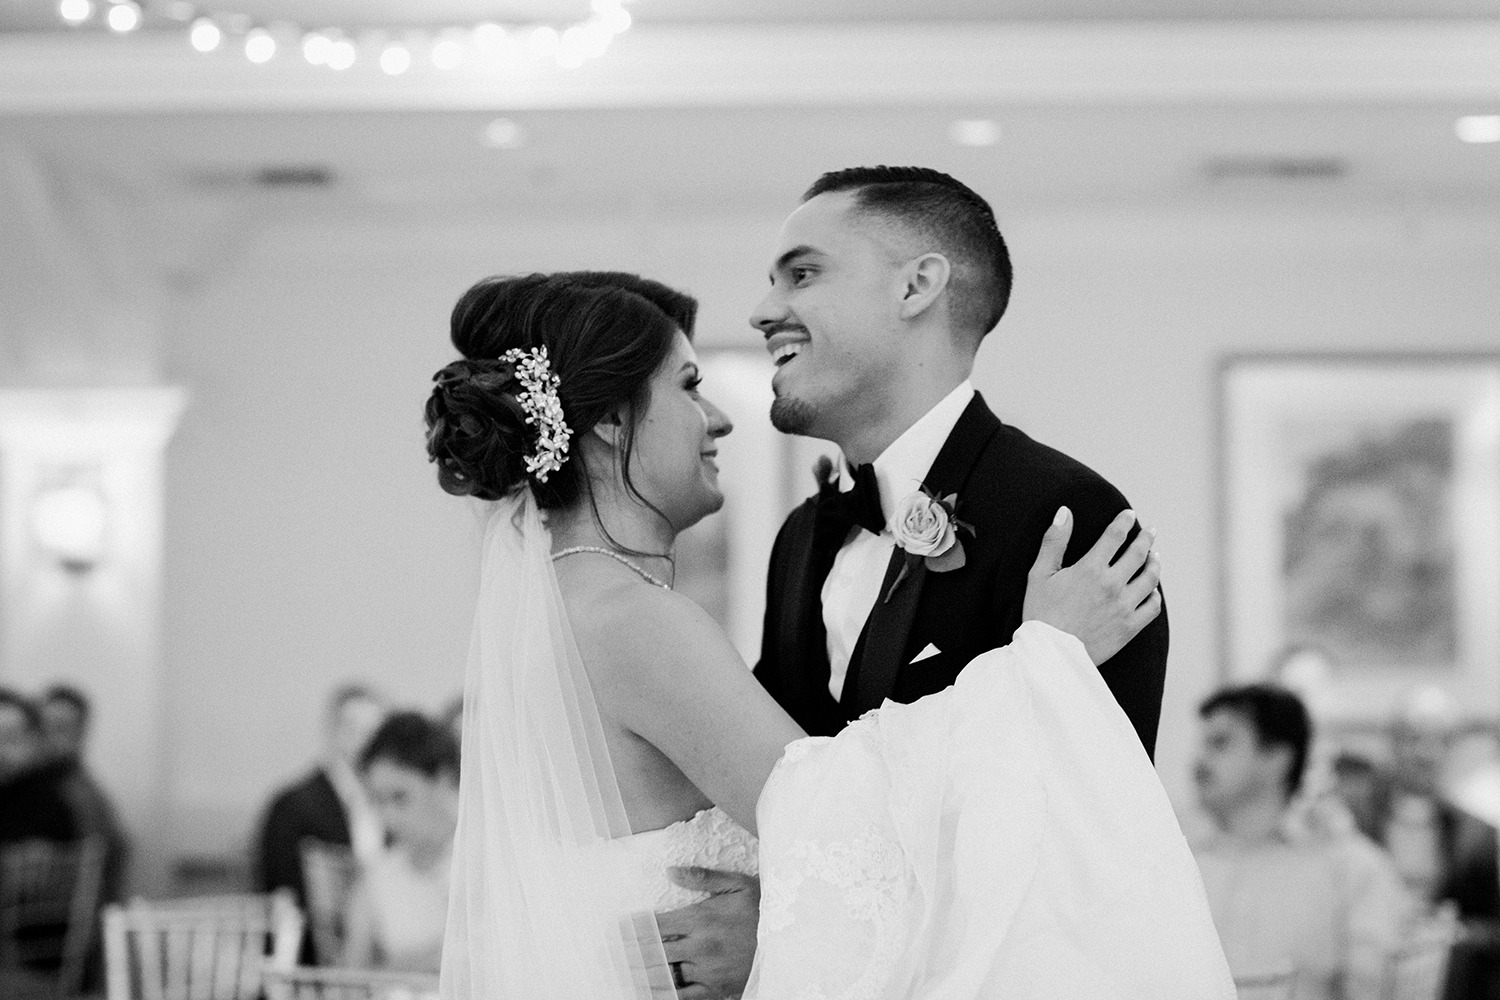 A bride and groom's romantic first dance.